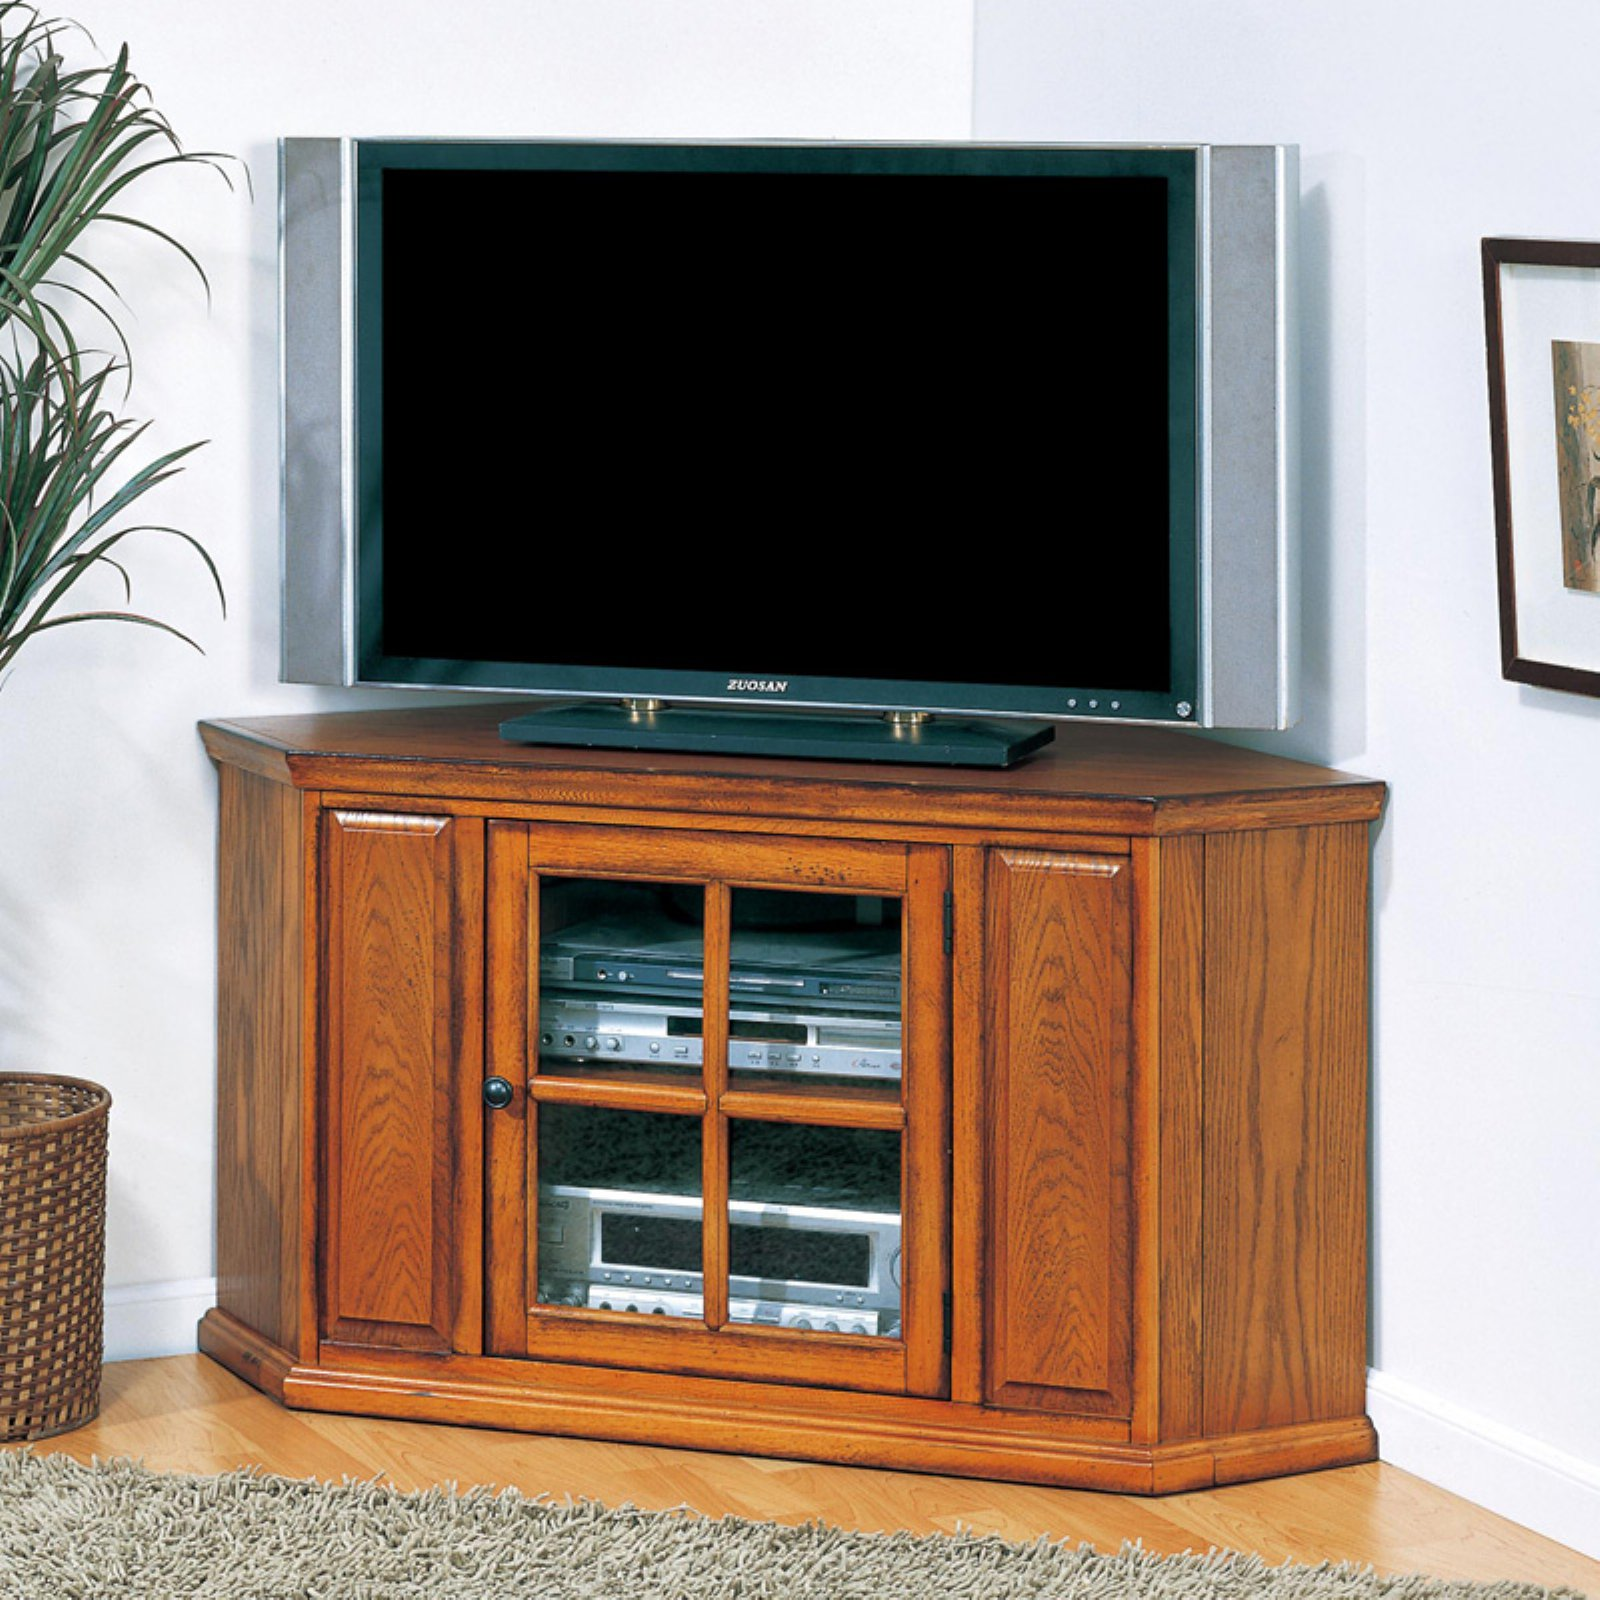 Leick 88285 Riley Holliday Oak 46 in. Corner TV Console by Leick Furniture